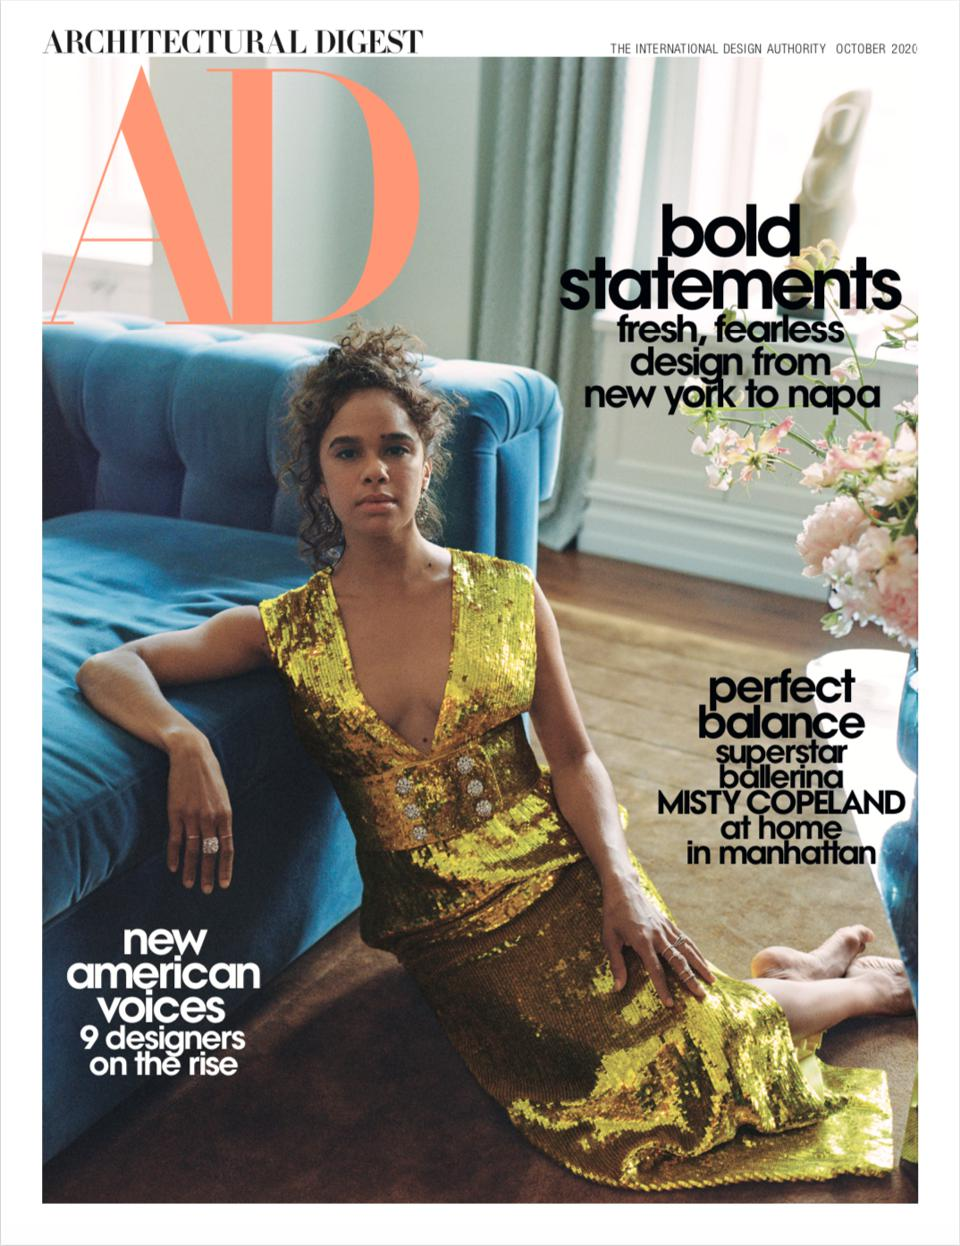 architectural digest, amy astley, misty copeland, future of design, conde nast